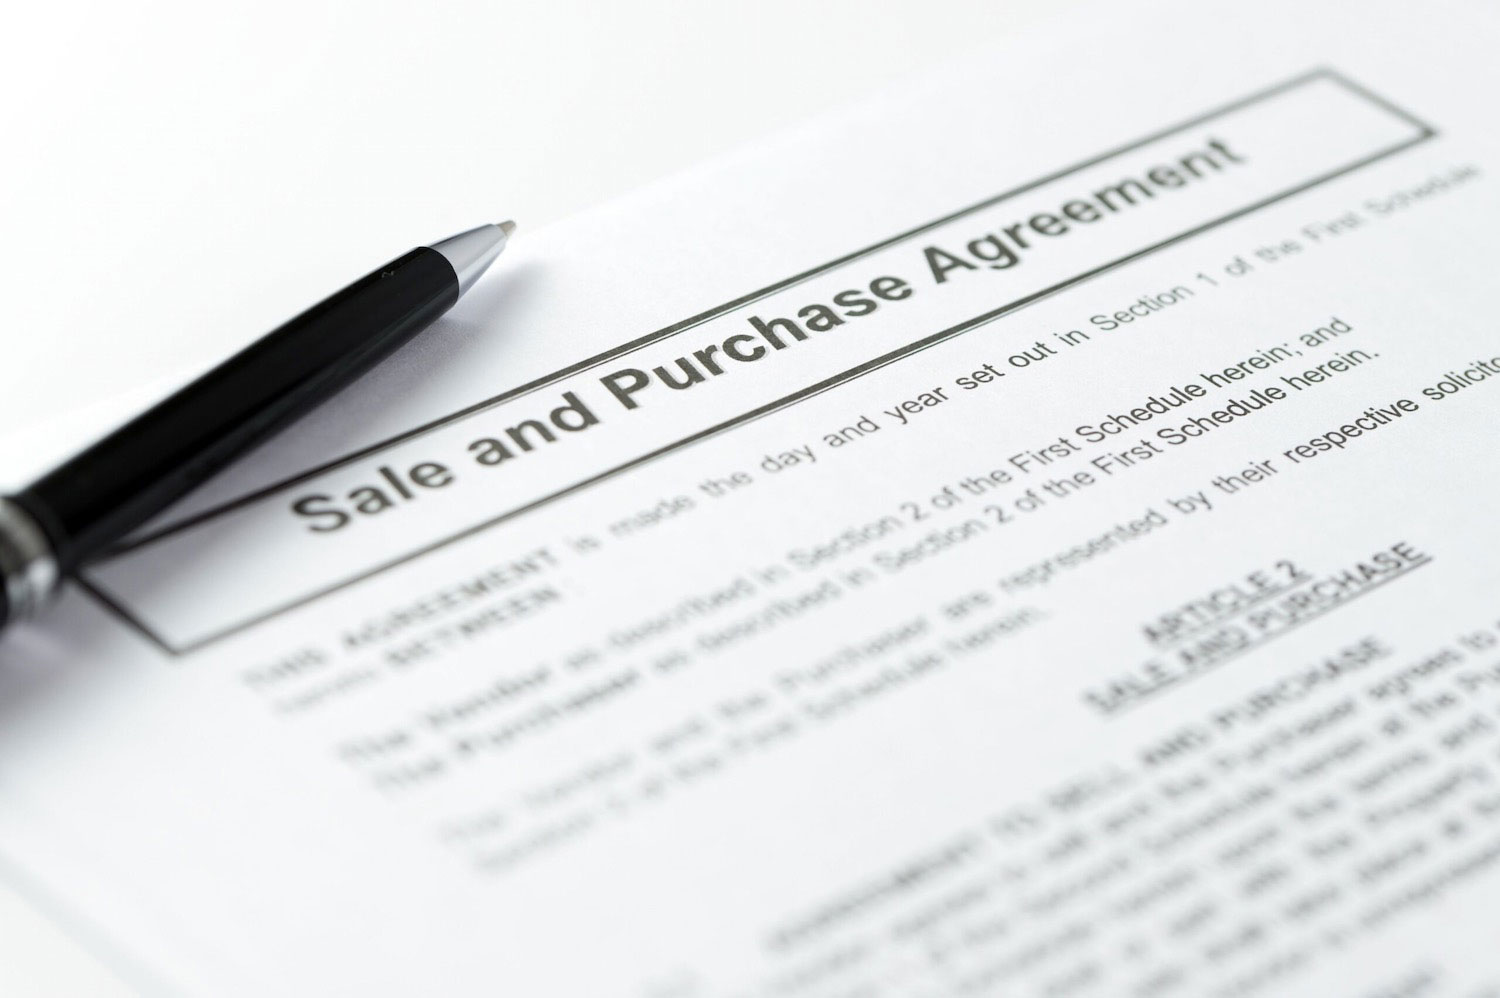 The Sale and Purchase Agreements - this will contain details of any rights you may have to sub sell or assign